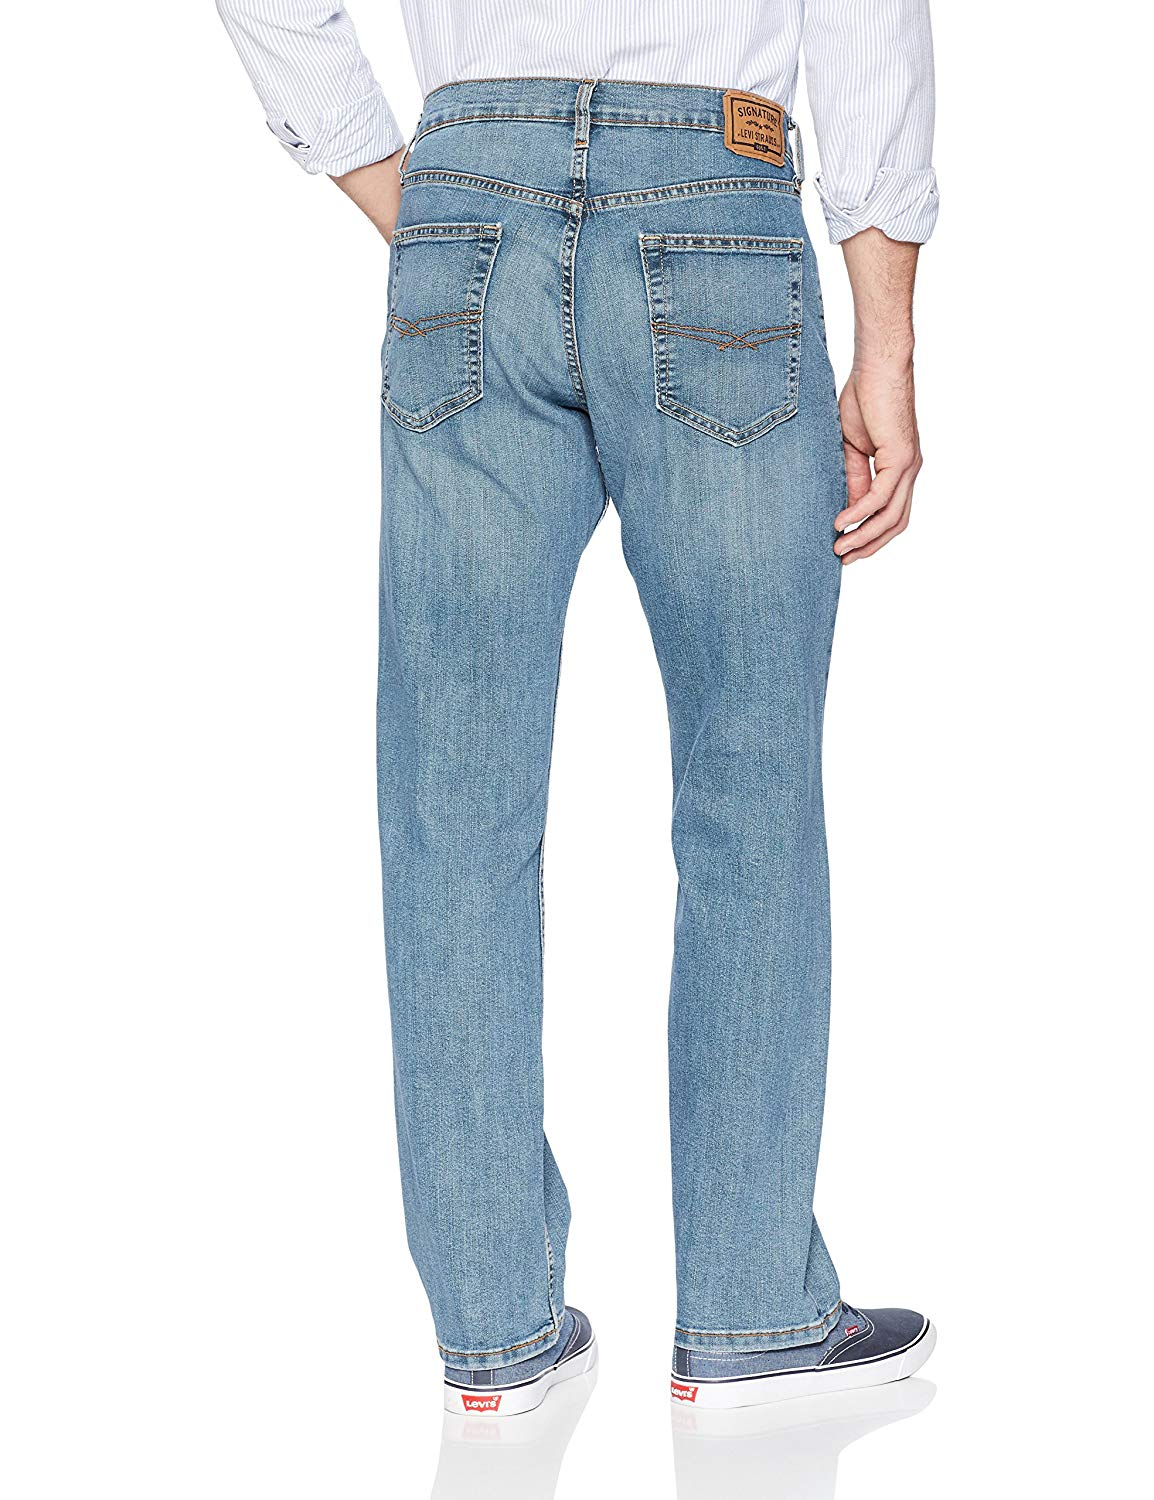 Signature-By-Levi-Strauss-amp-Co-Gold-Label-Titan-Blue-Men-Relaxed-Fit-Jeans thumbnail 2